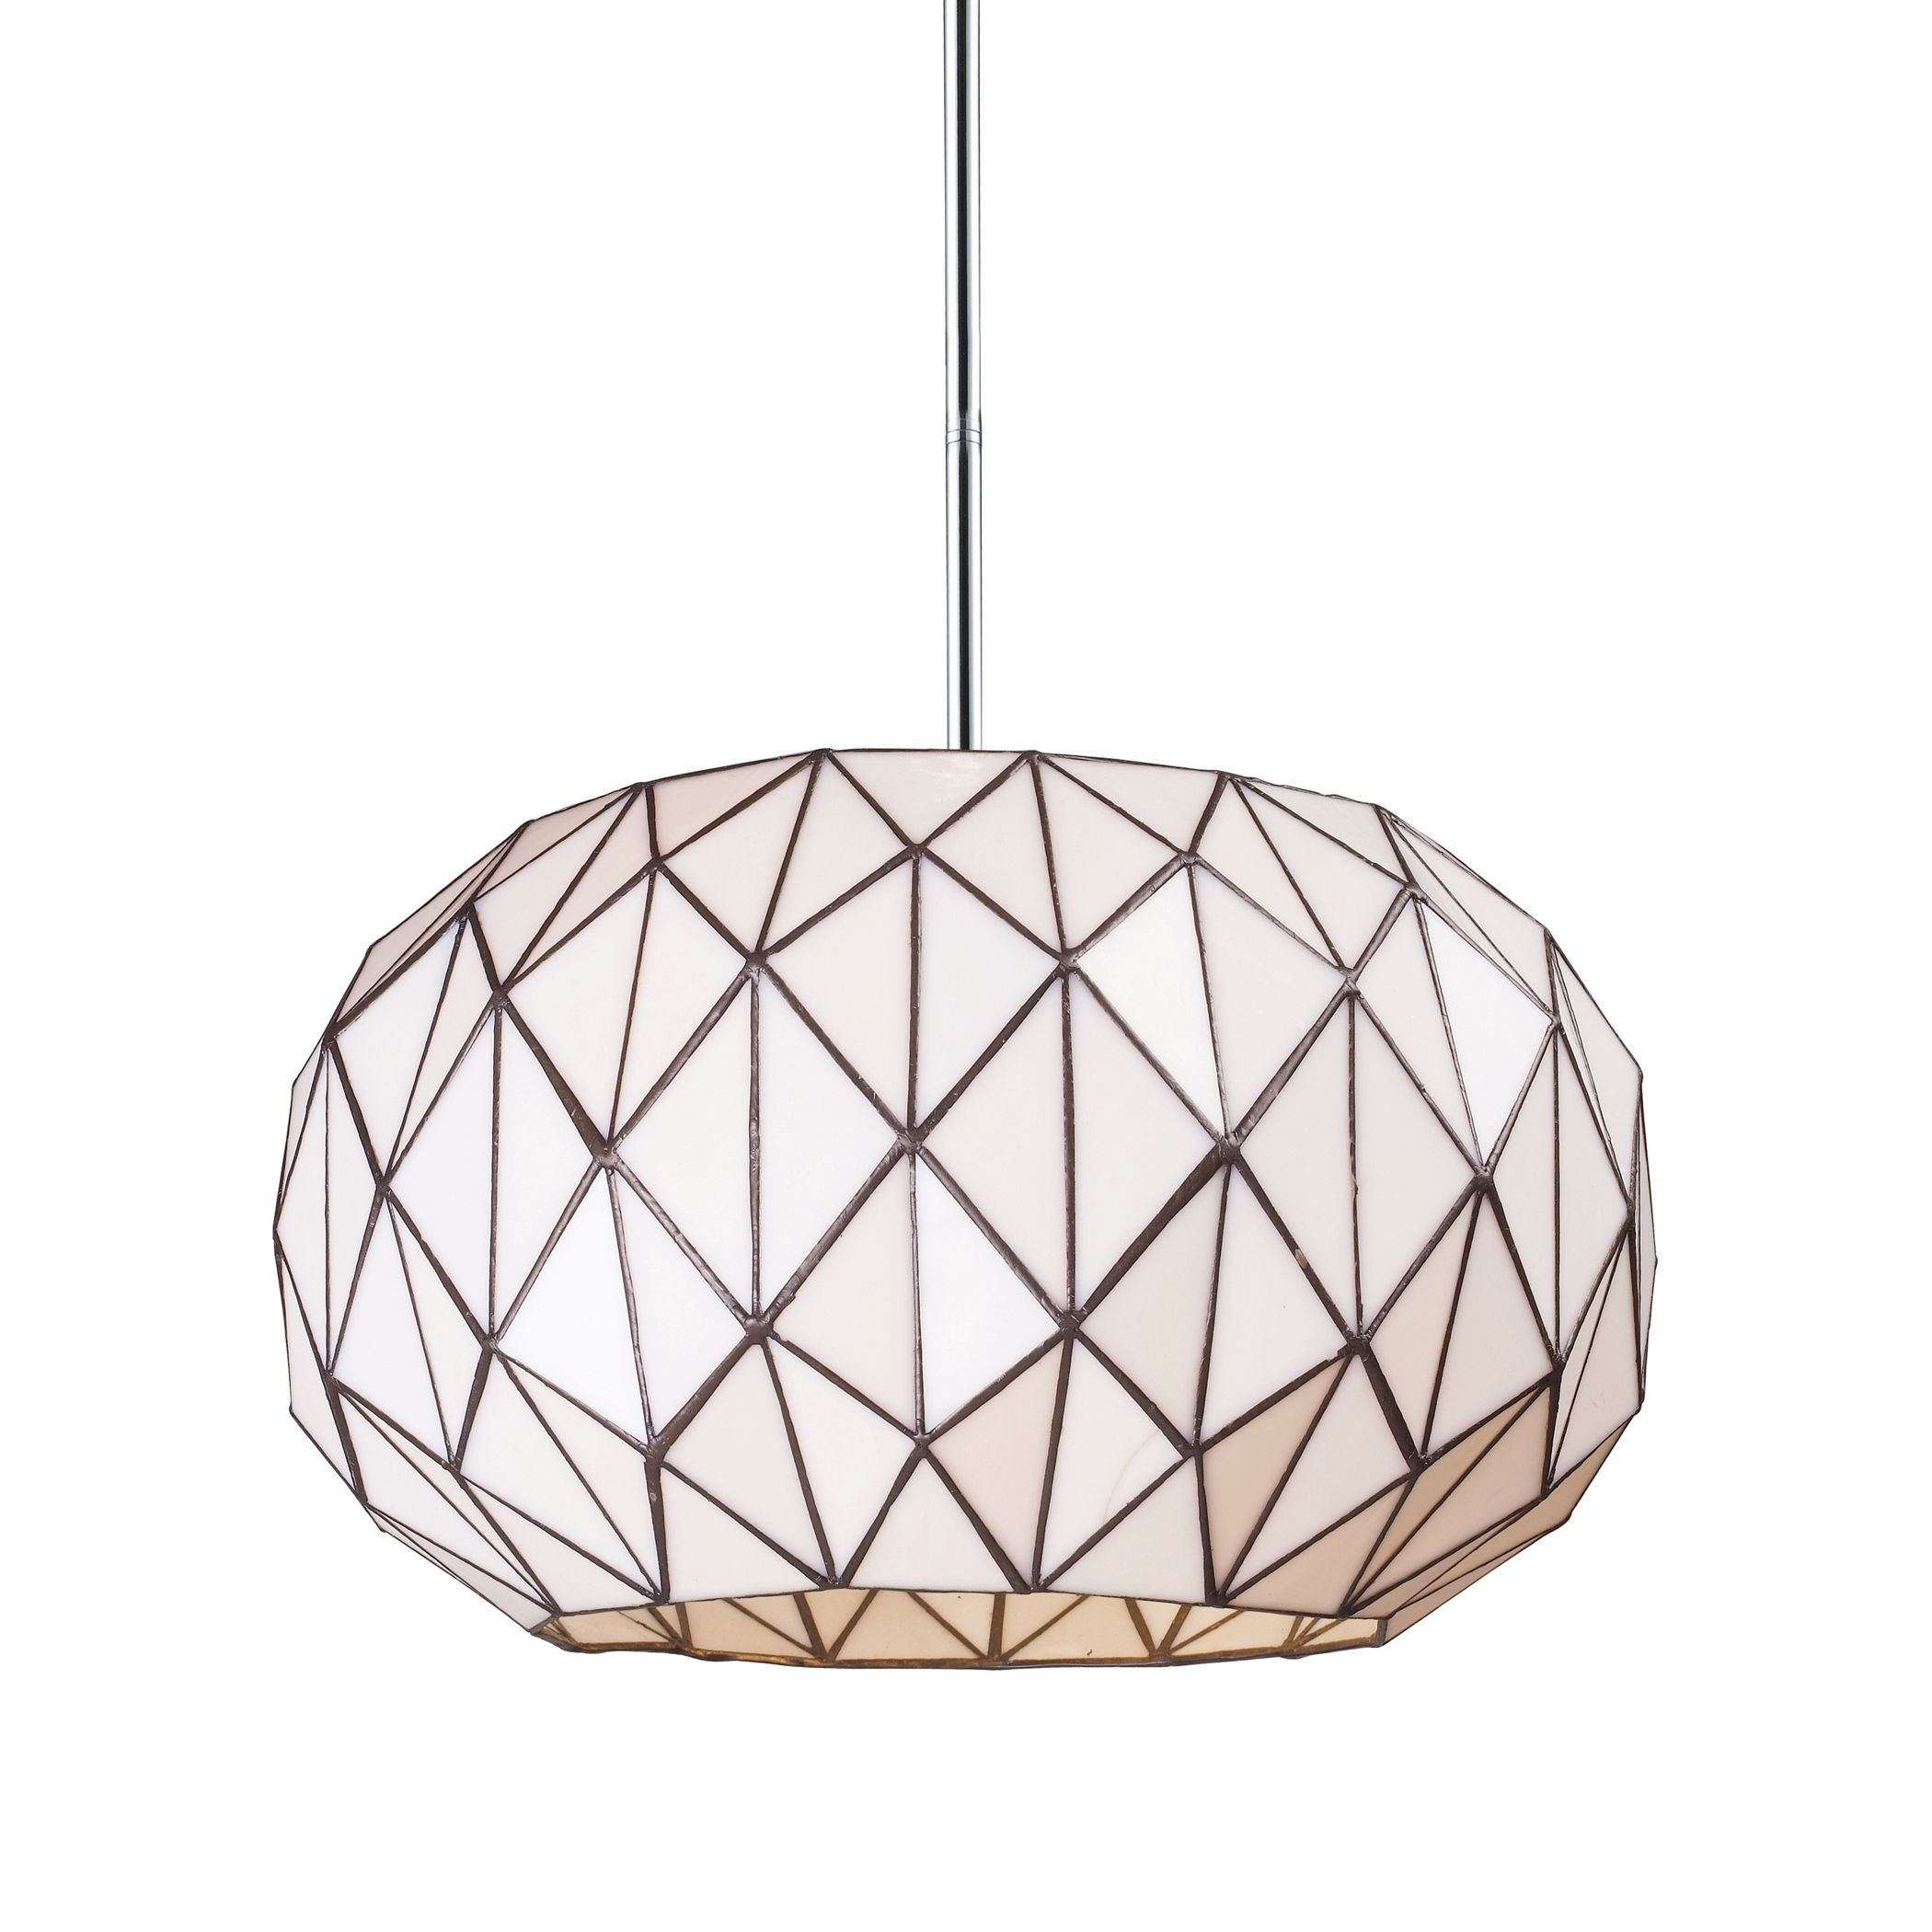 The Tetra pendant brings a modern approach to classic Tiffany-style lighting, using triangular pieces of cut glass assembled in a contemporary, geometric shape. The chrome finish sets the piece off in modern style.